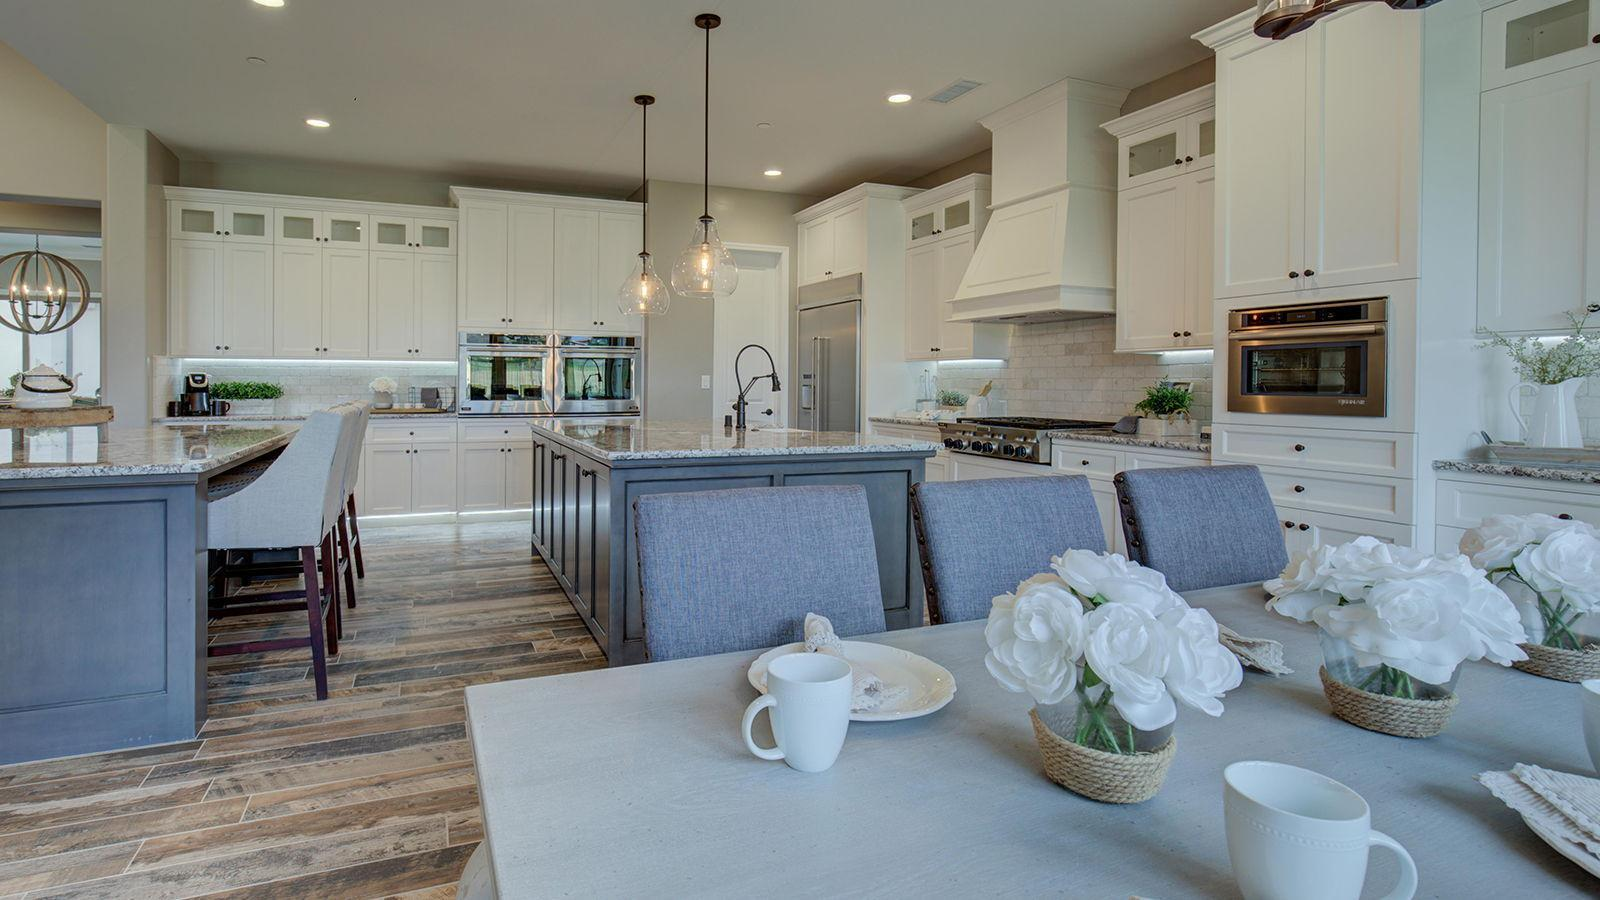 Kitchen featured in the Residence 5 By Granville Homes  in Fresno, CA